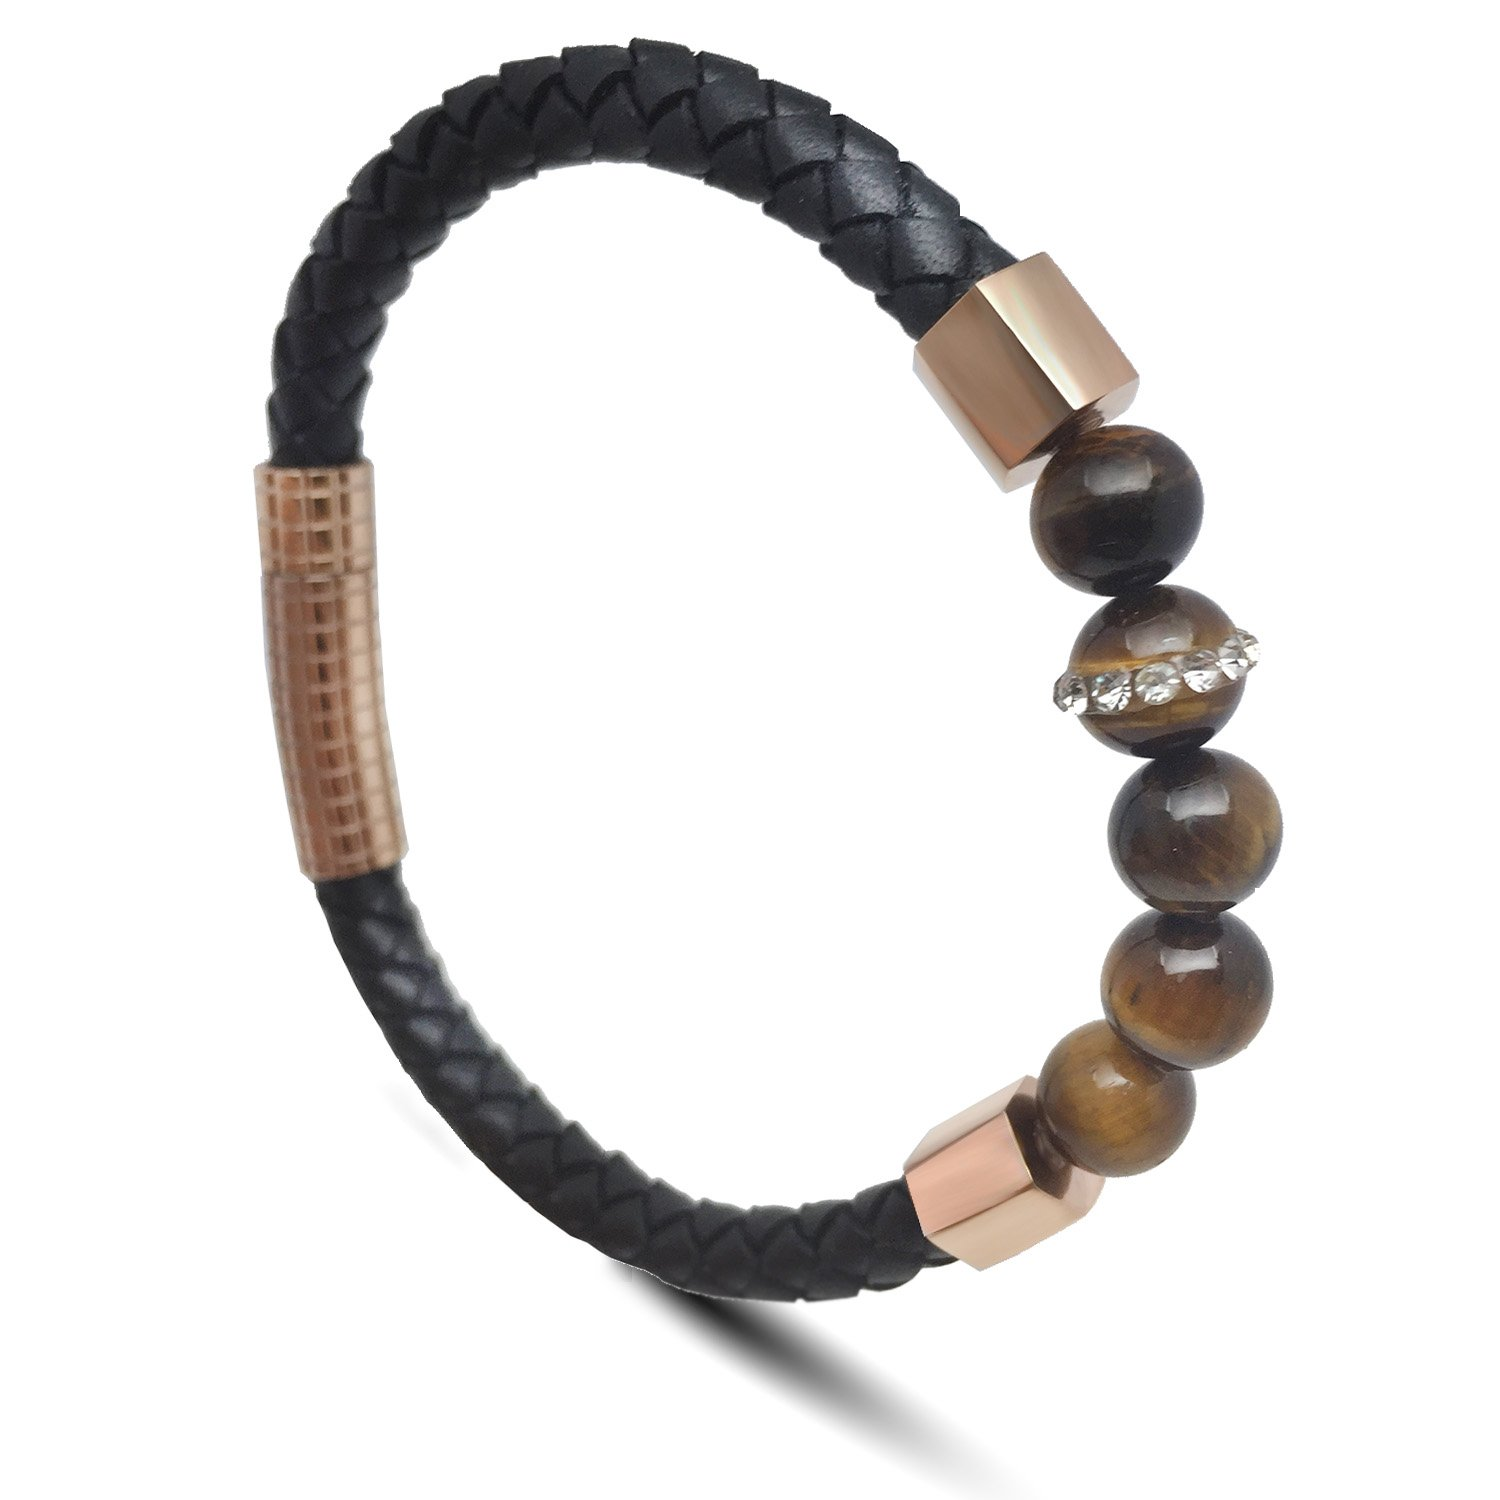 ZD-jewelry Mens Leather Bracelet Cowhide Braided Natural Tiger's-eye Beads Stainless Steel Buckle, Black Leather,Bracelet For men 8.5 inch by ZD-jewelry (Image #1)